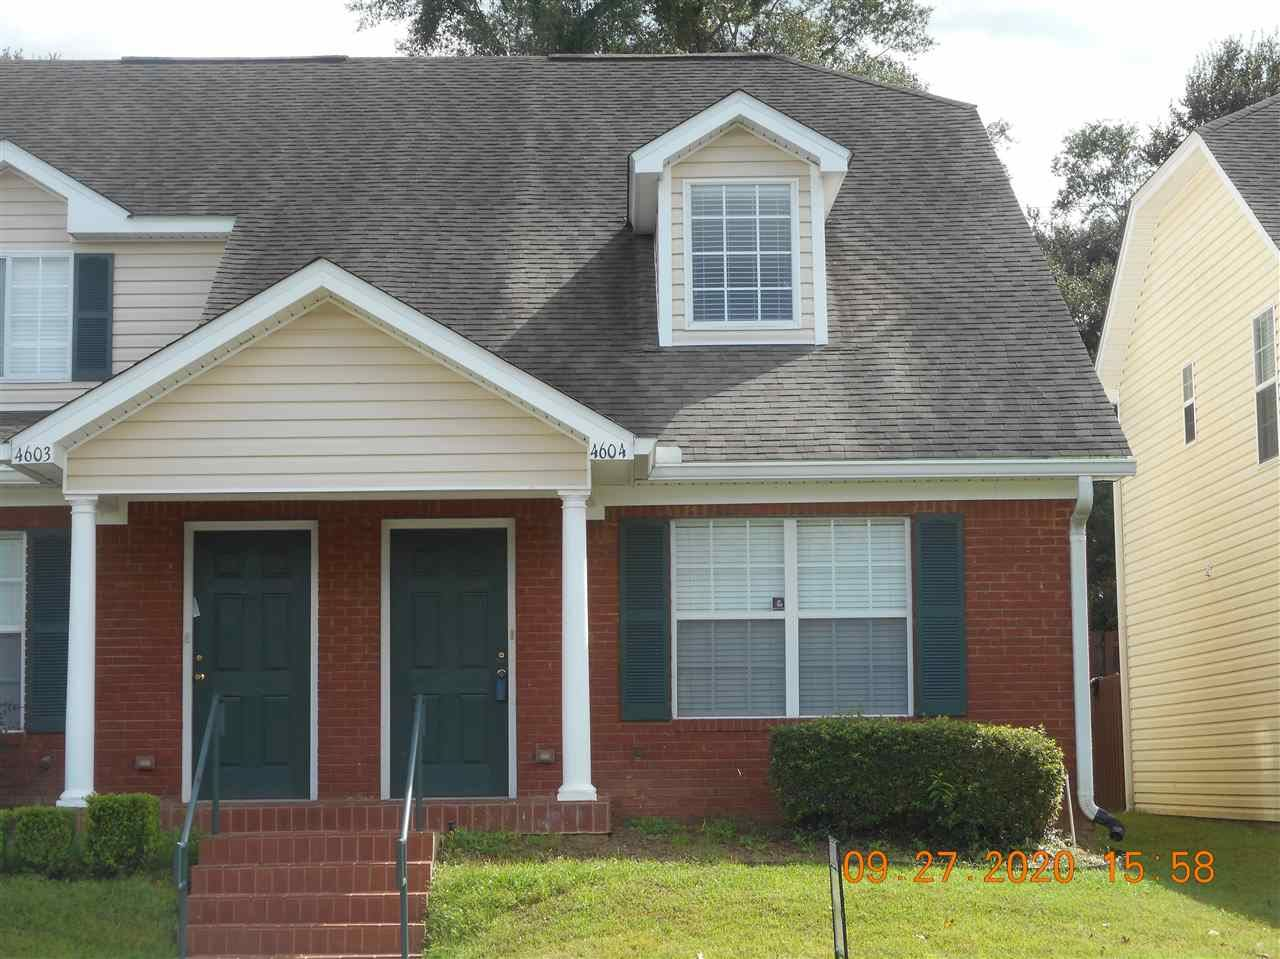 Photo for 4434 Gearhart Road #4604, TALLAHASSEE, FL 32303 (MLS # 324137)